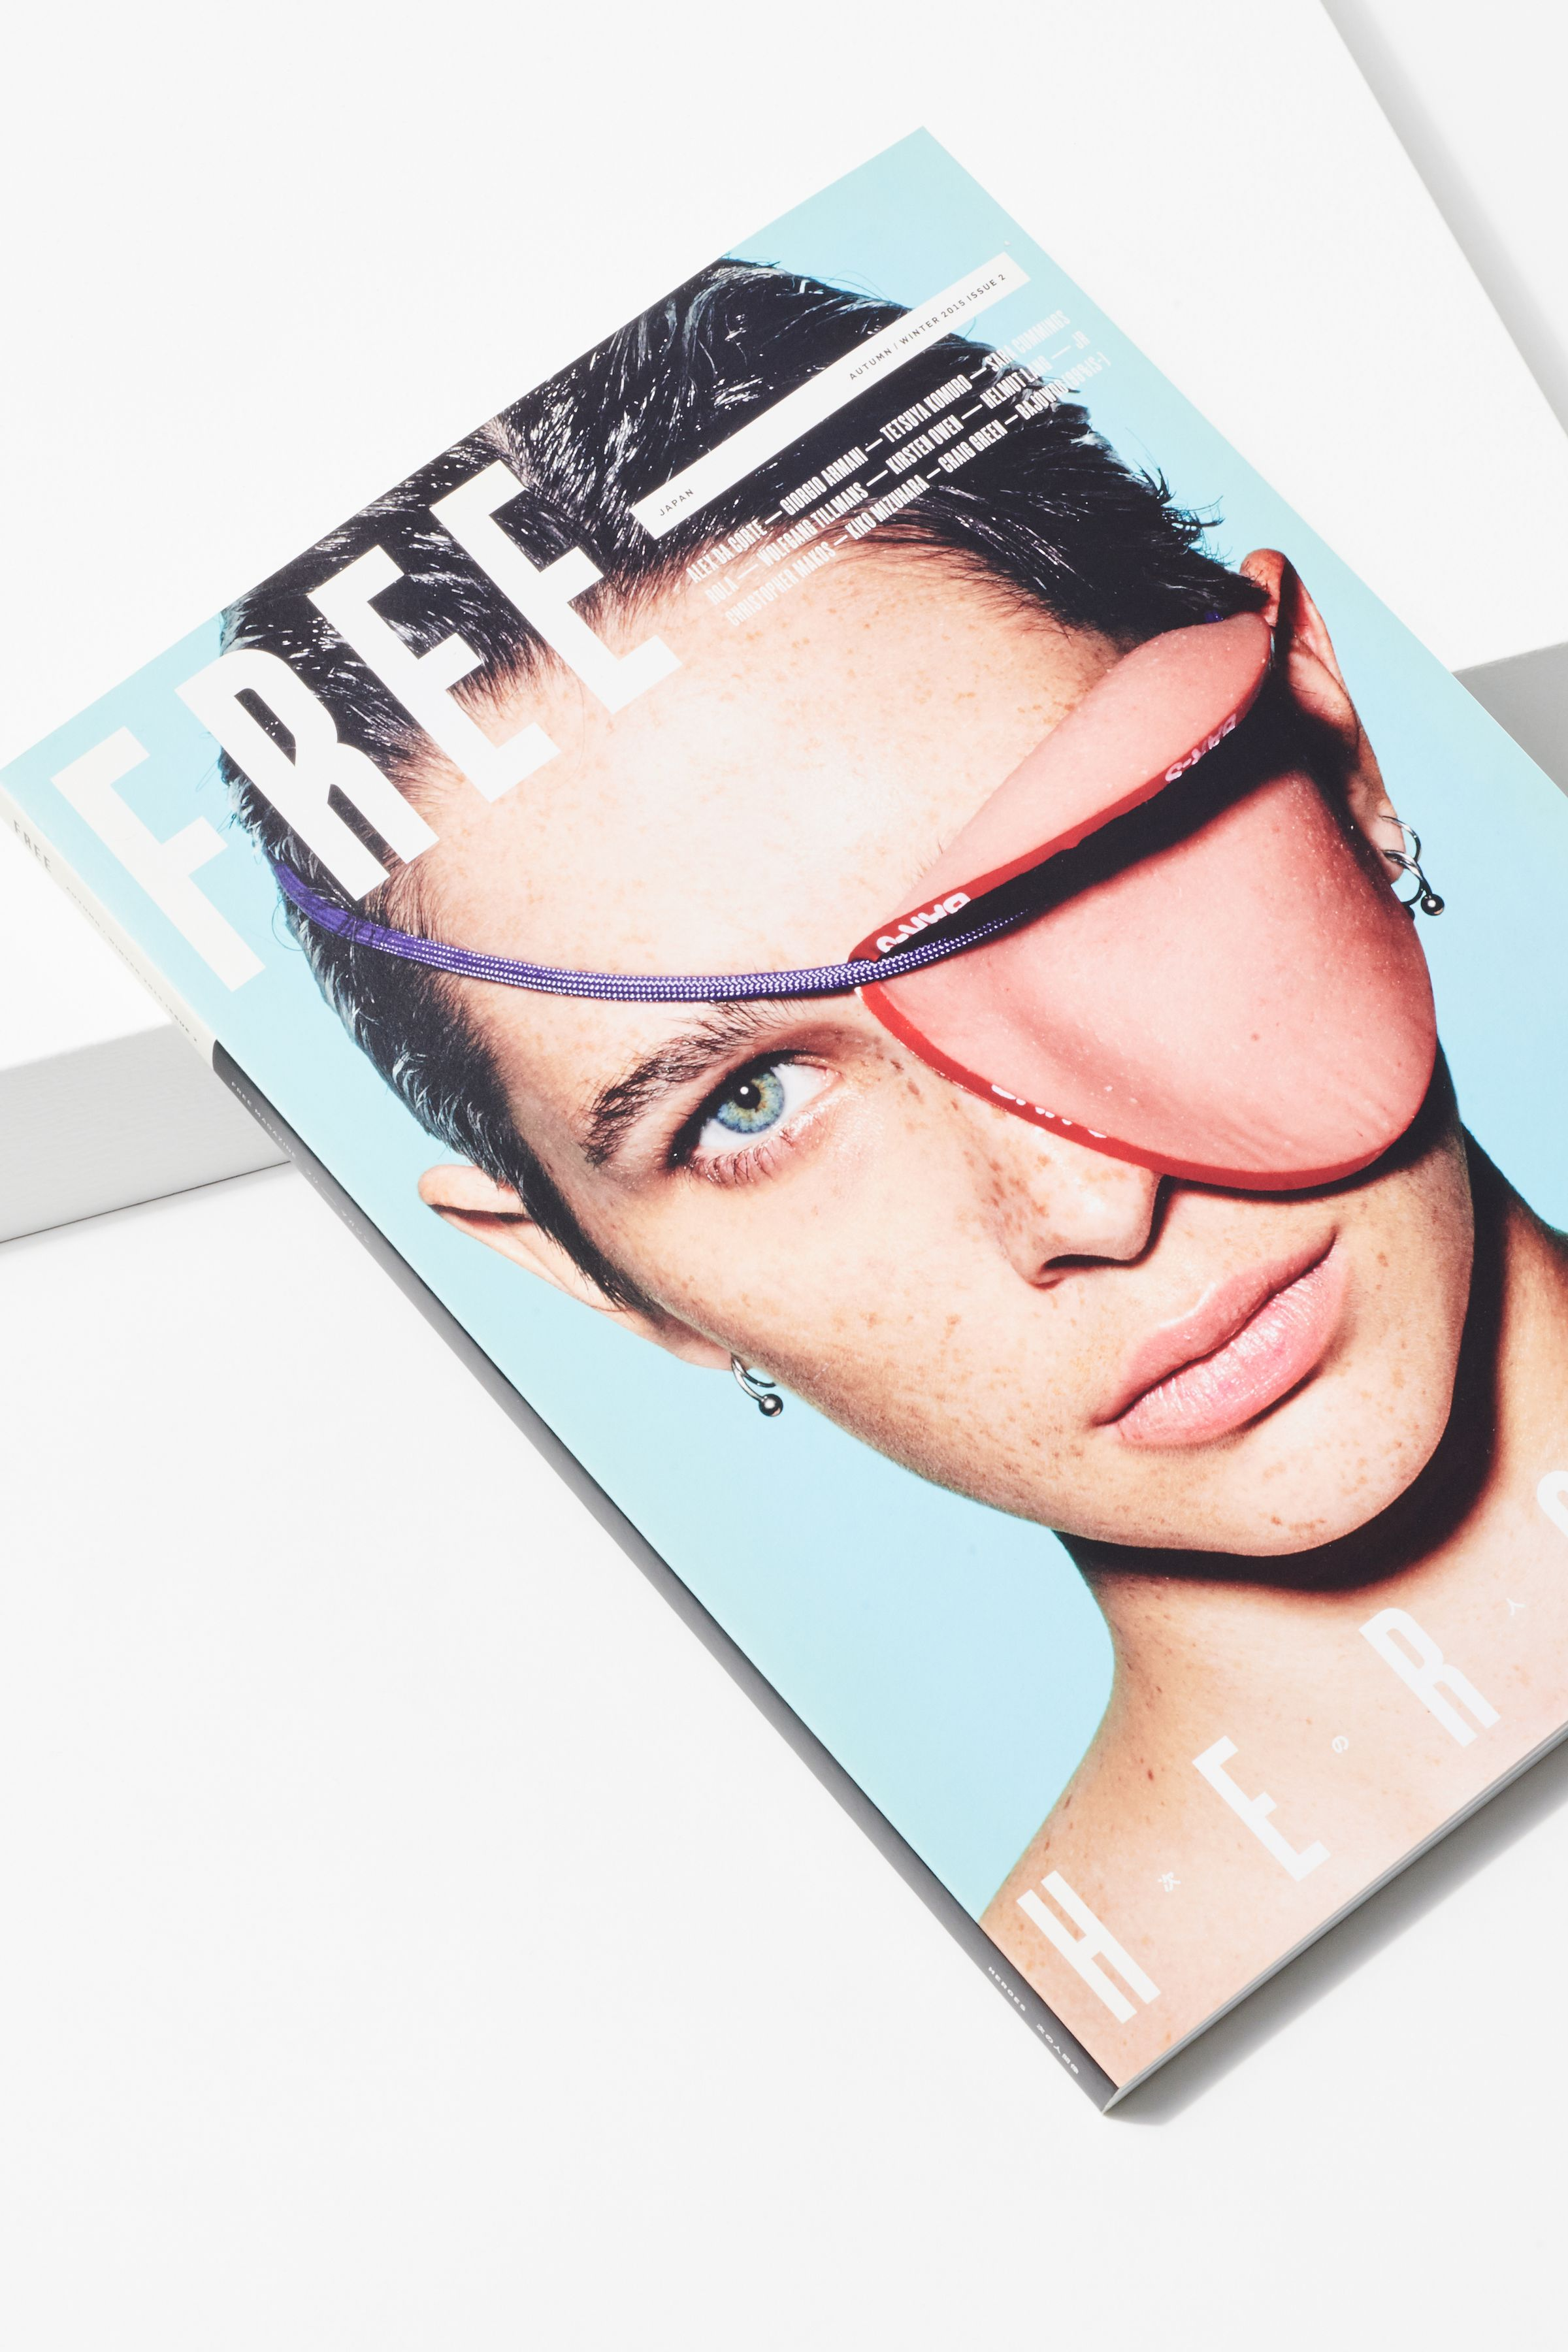 Free Magazine issue 2 cover with photography by Richard Burbridge